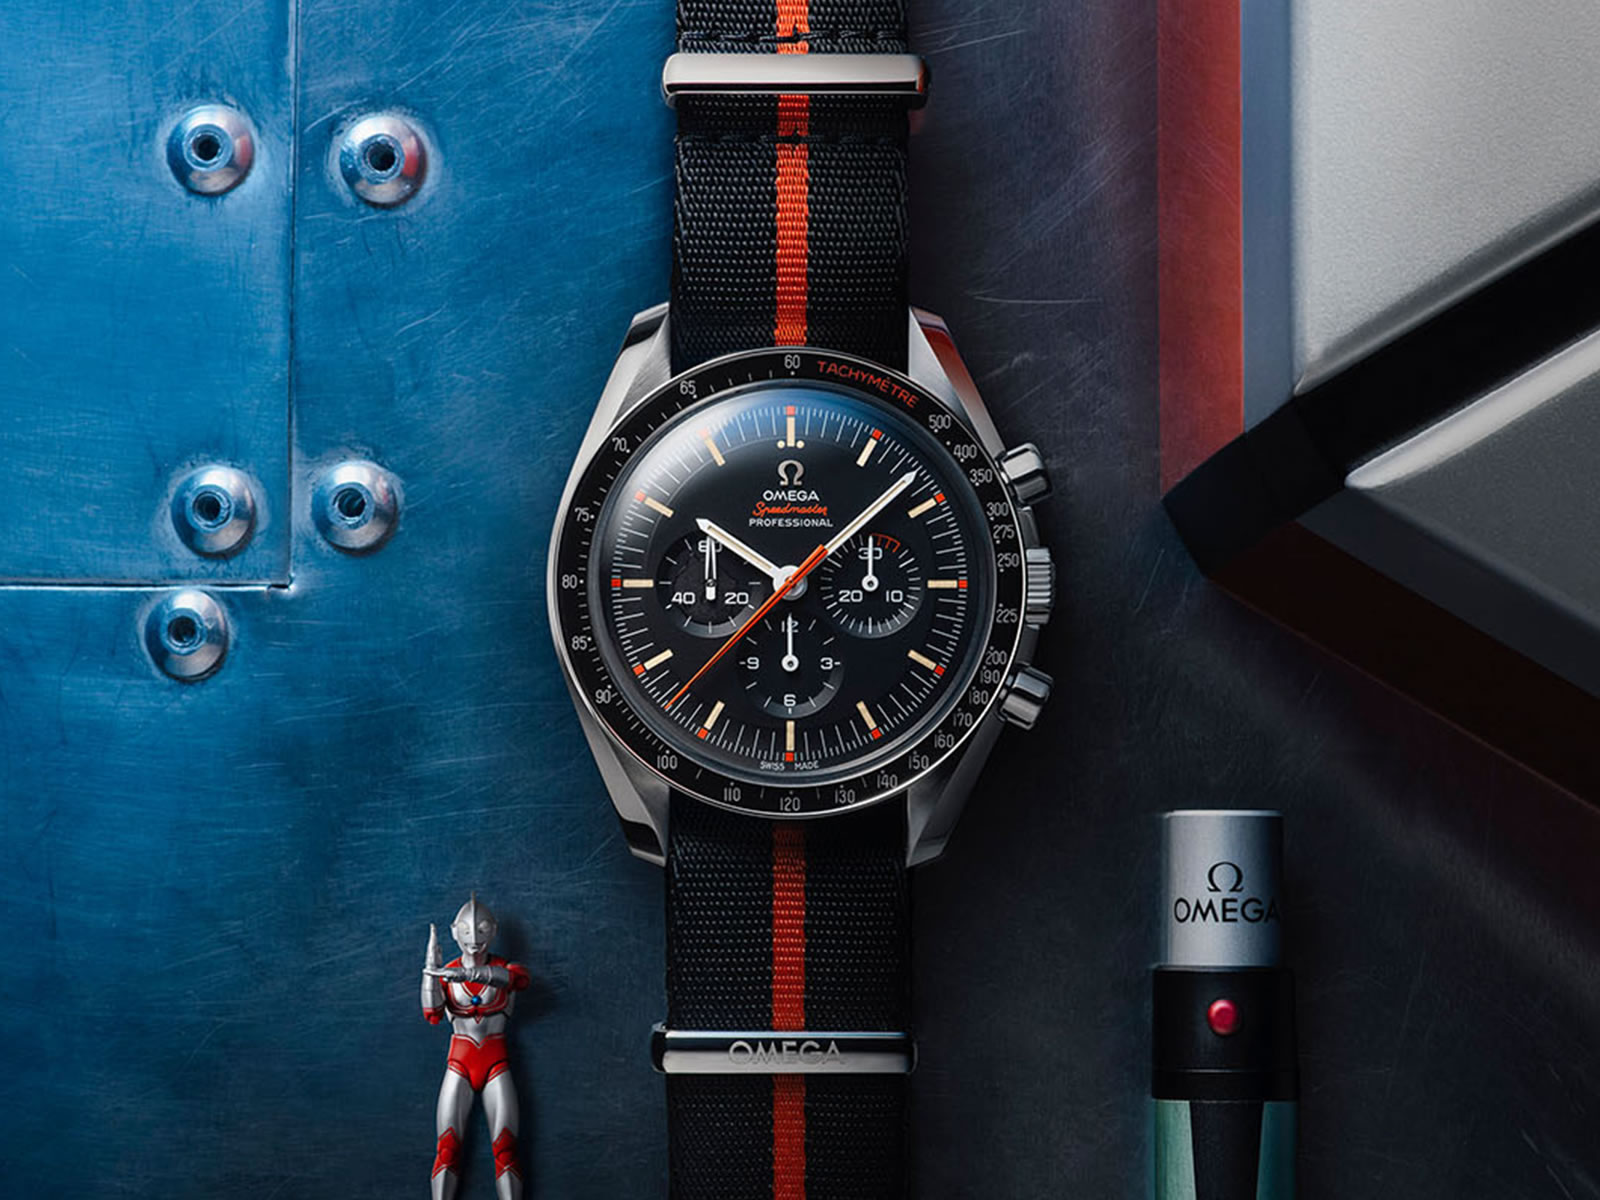 311-12-42-30-01-001-omega-speedmaster-limited-edition-42mm-ultraman-6-.jpg